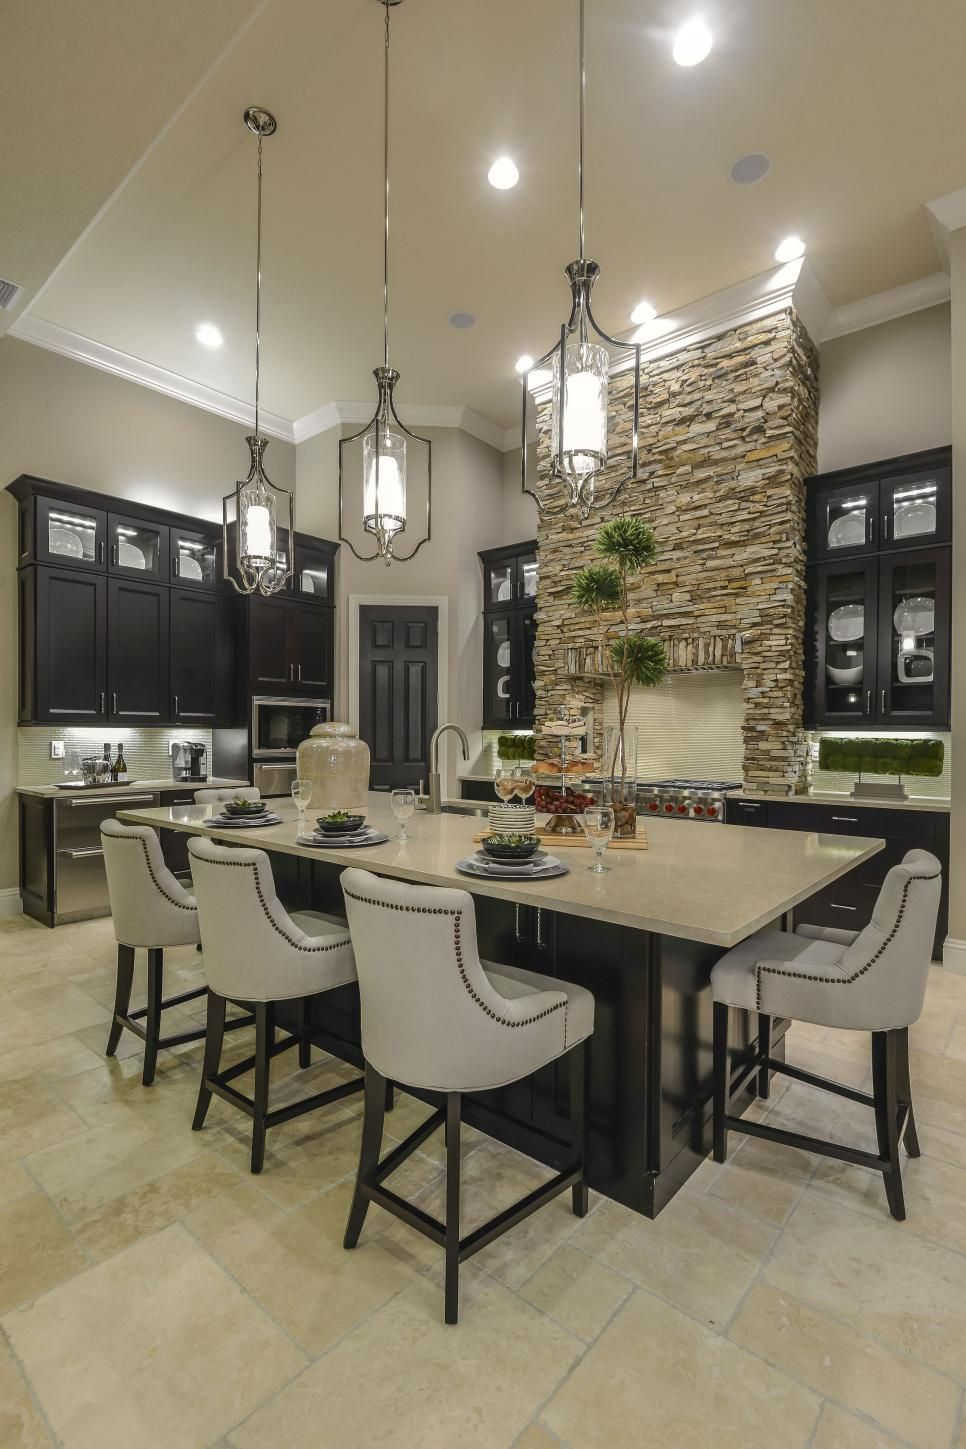 Giant pendant lighting dark cabinets comfy chairs stacked stone